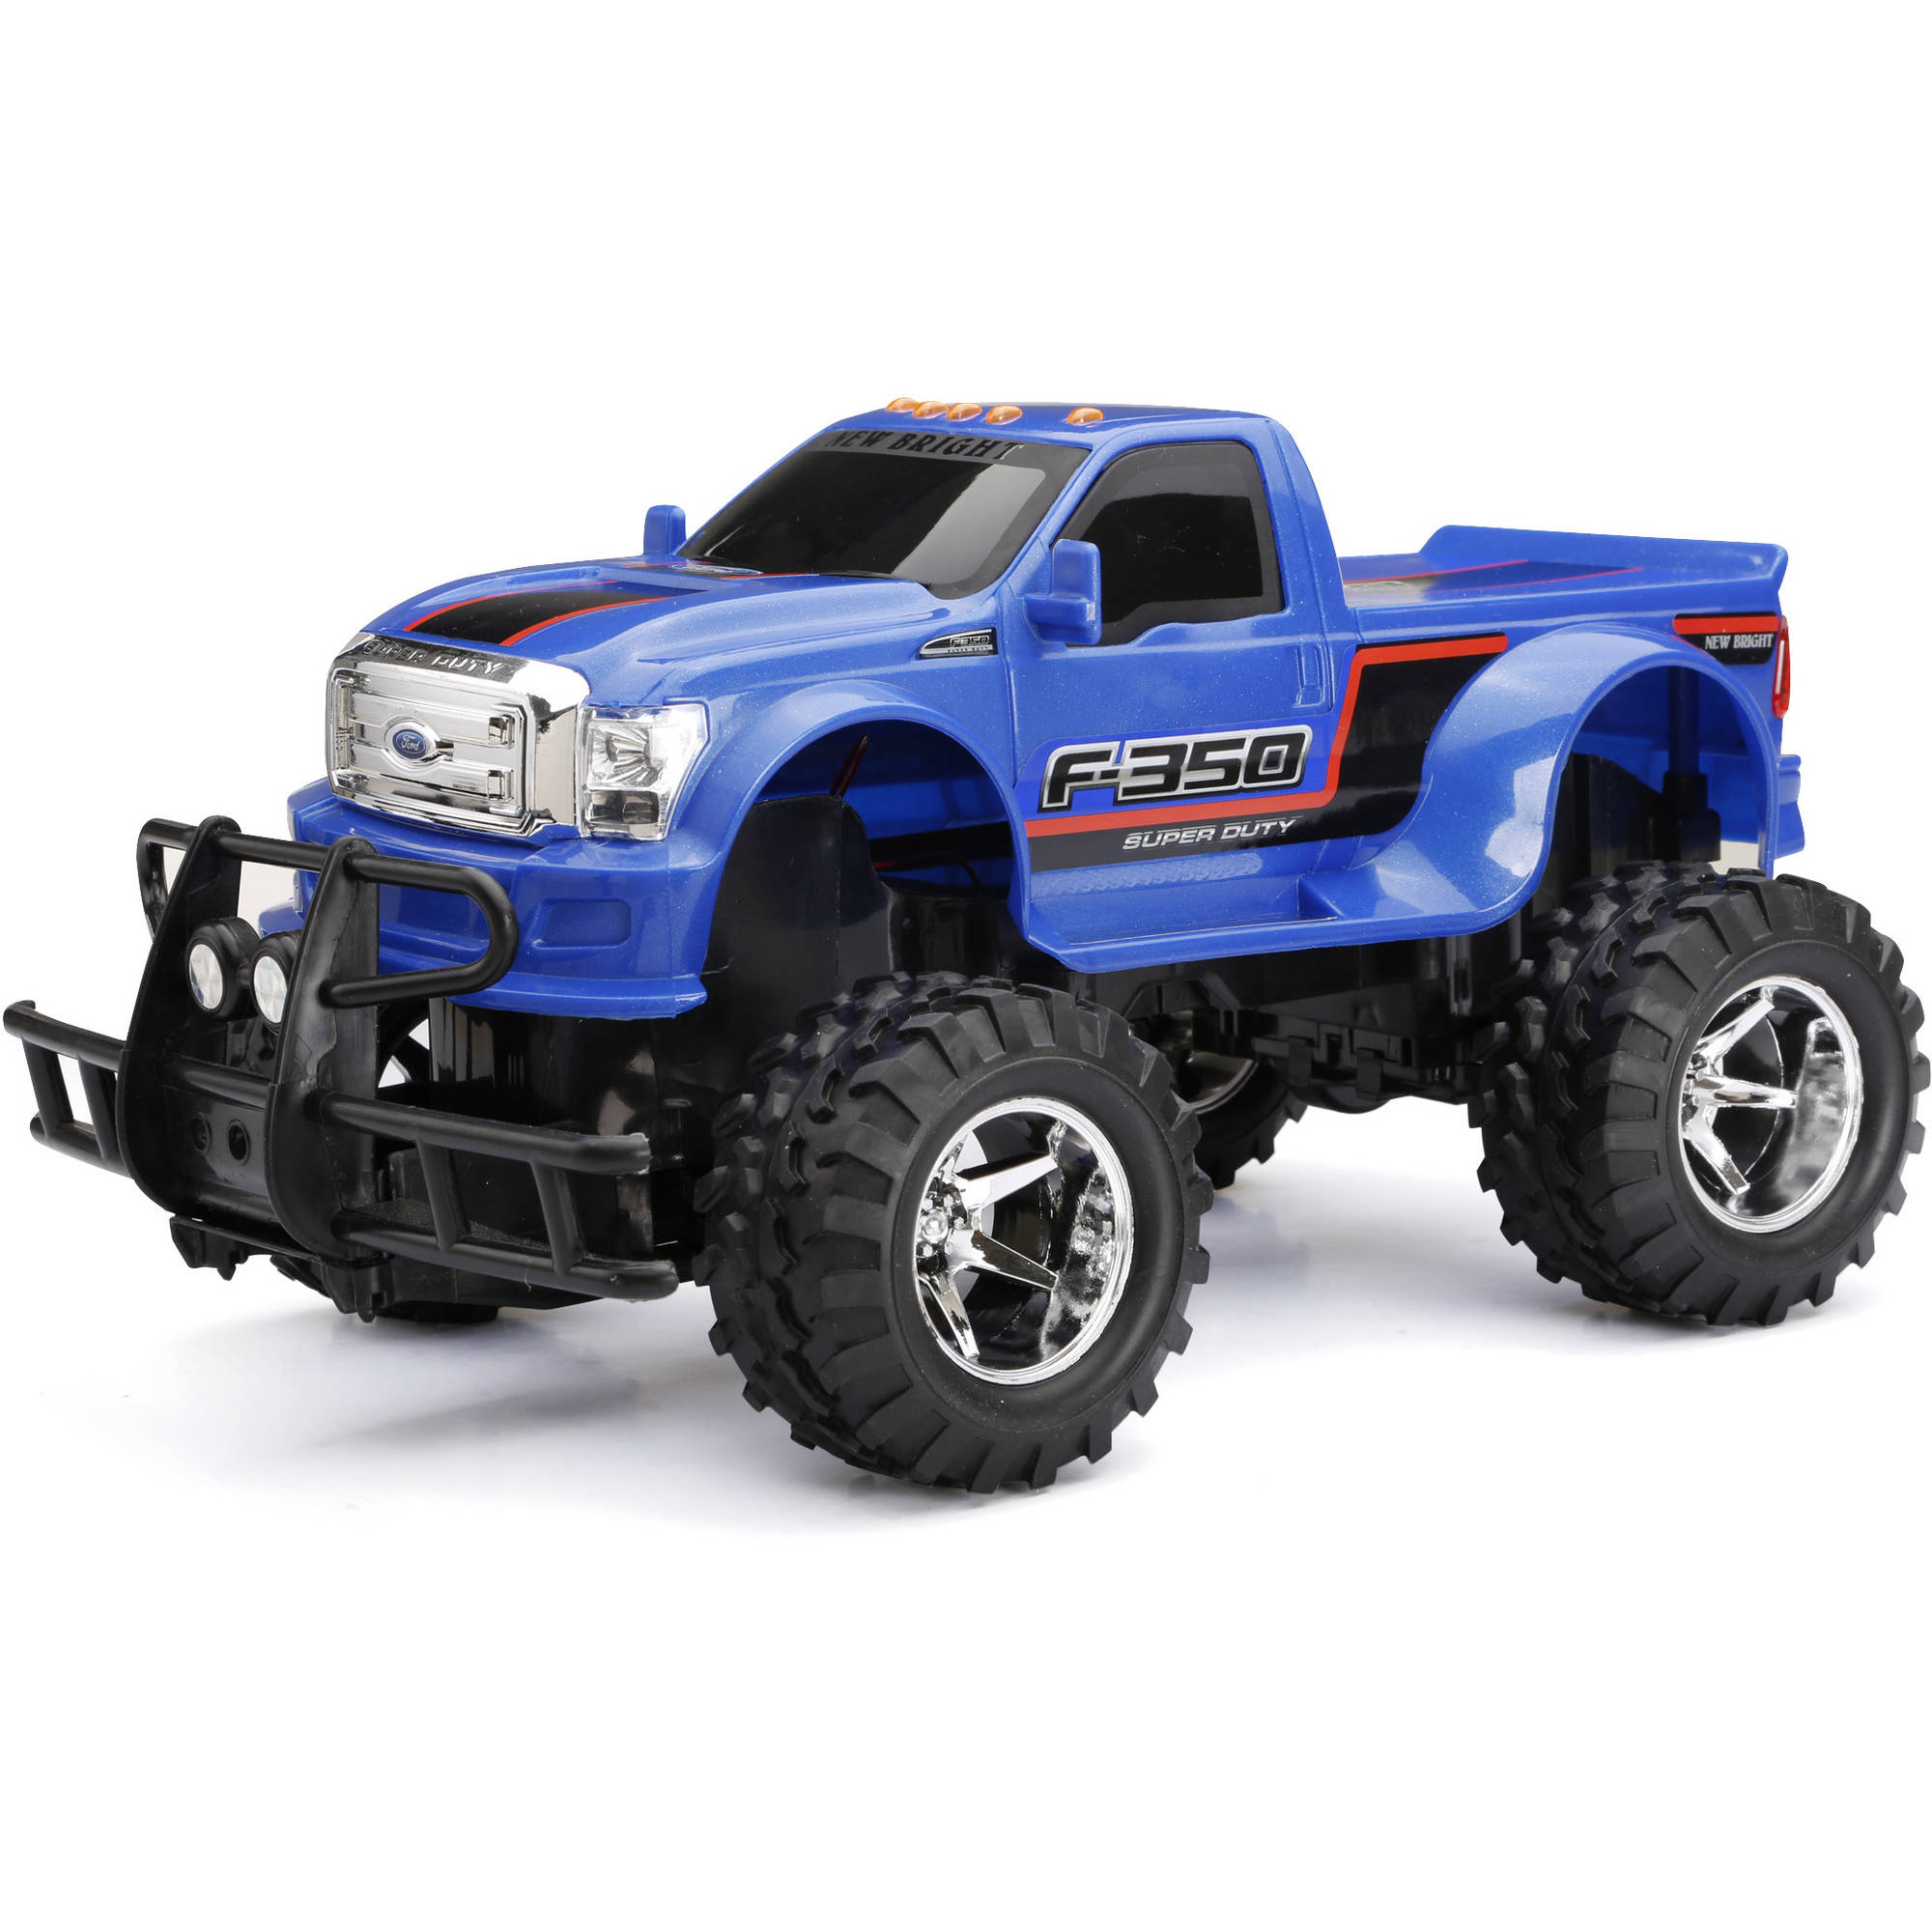 New Bright 1:15 Ford F-350 Vehicle Radio Controlled Car